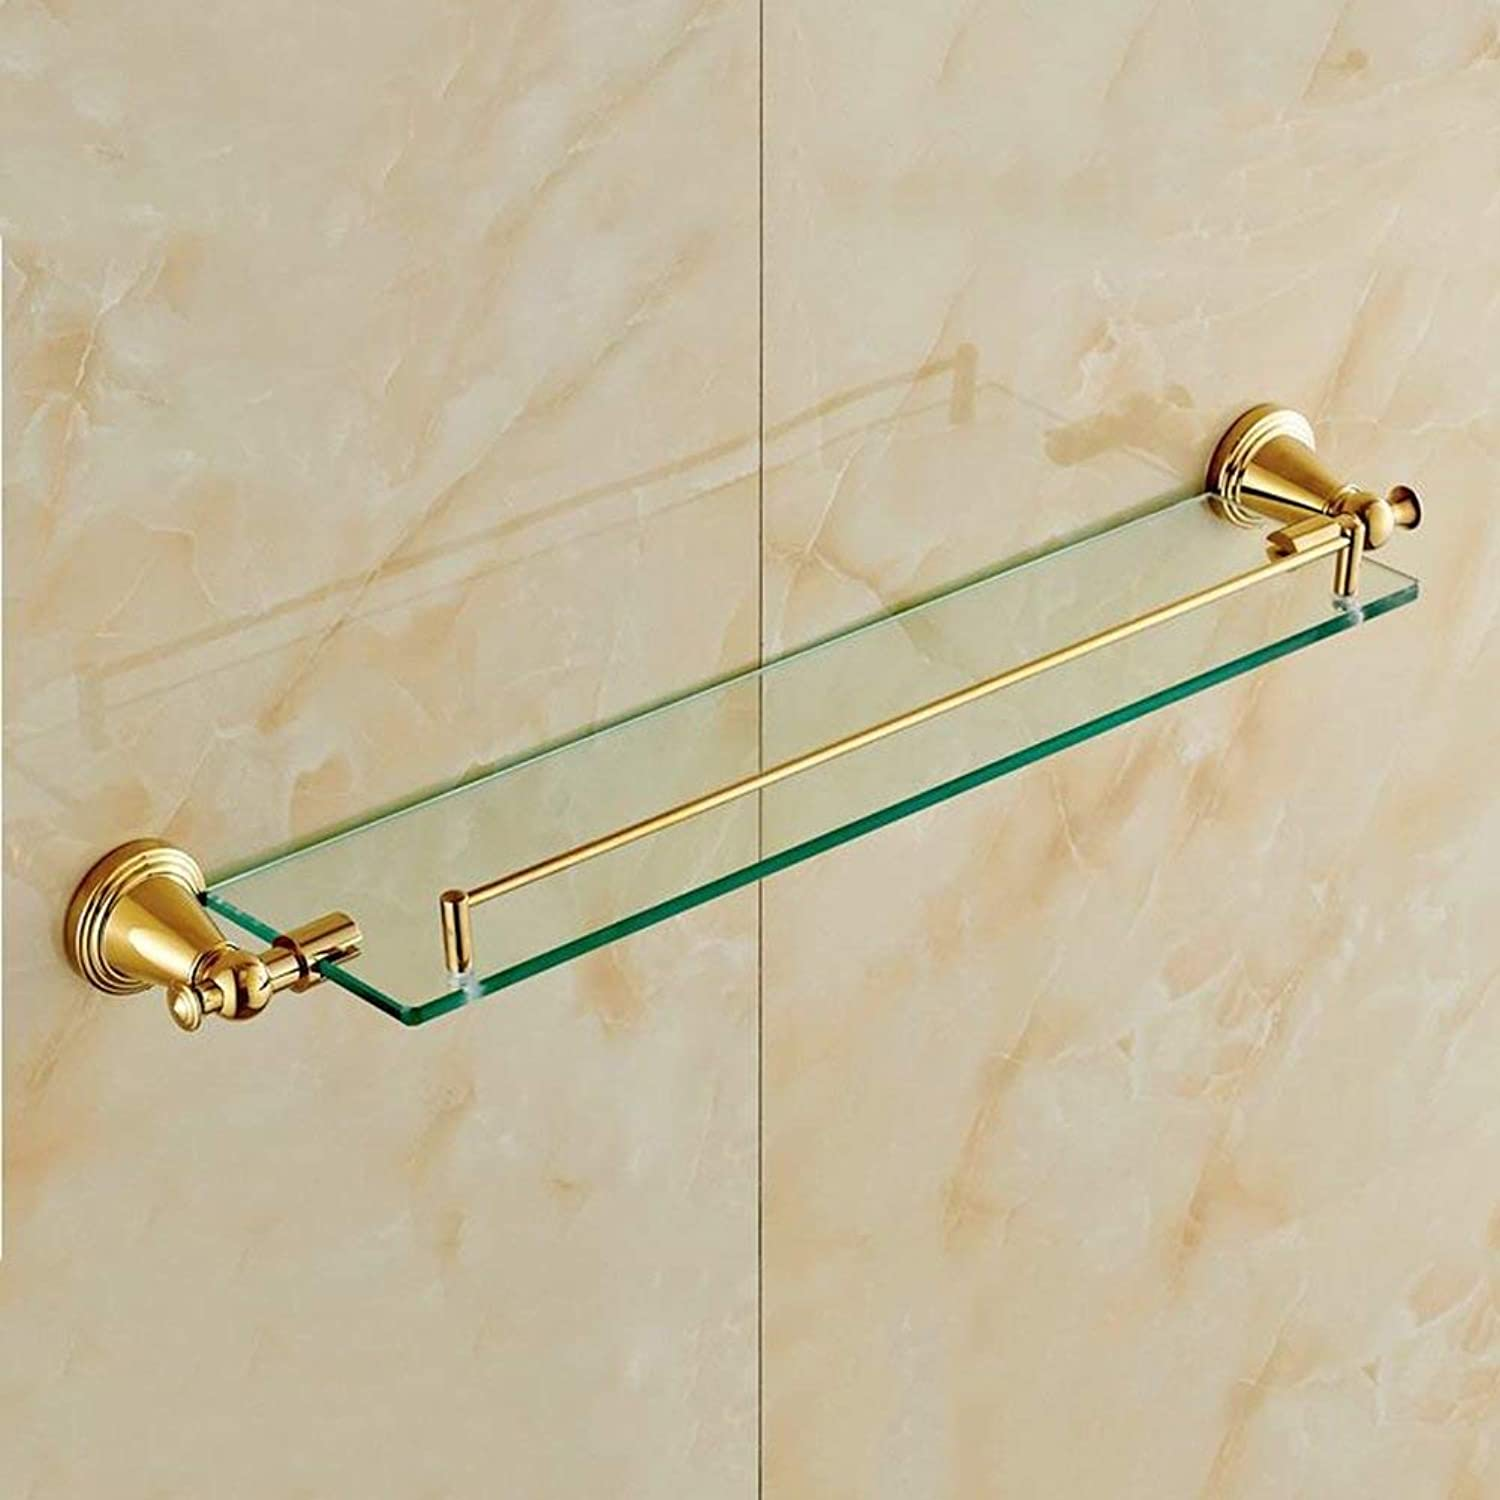 Shower Shelf Copper+Glass Material 8mm Tempered Glass Round Base PVD Vacuum Plating golden Easy to Clean